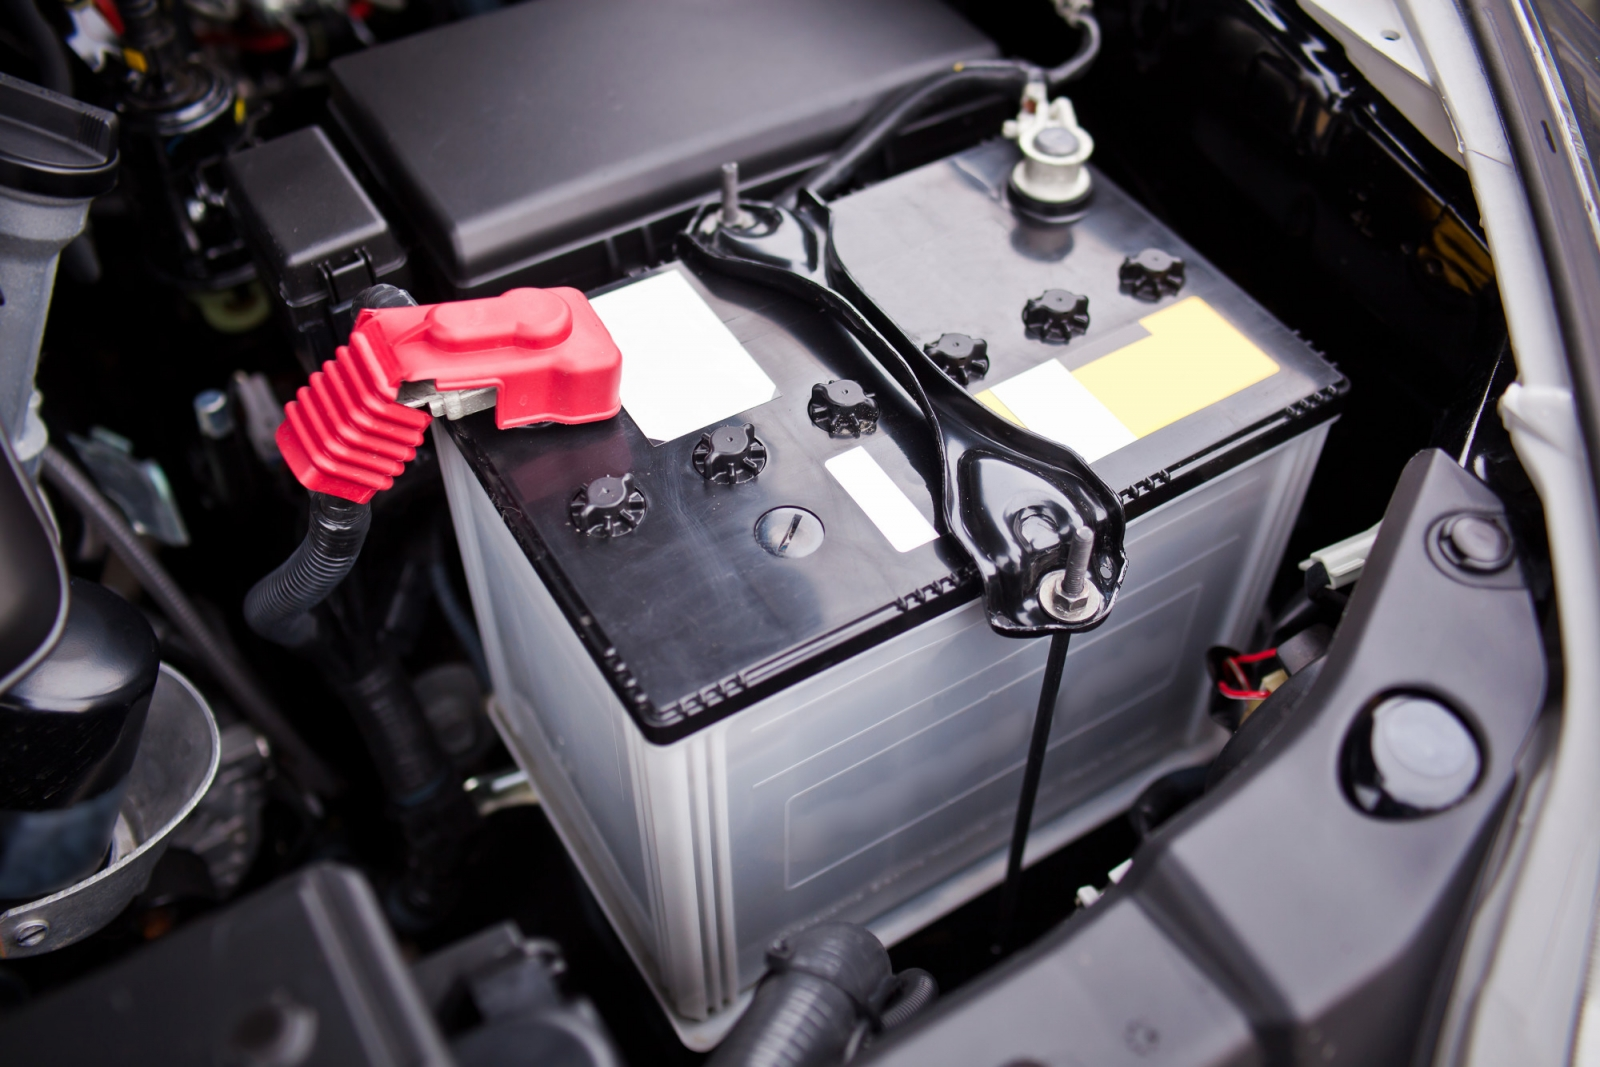 How Long Does a Car Battery Last on Average? Car battery life